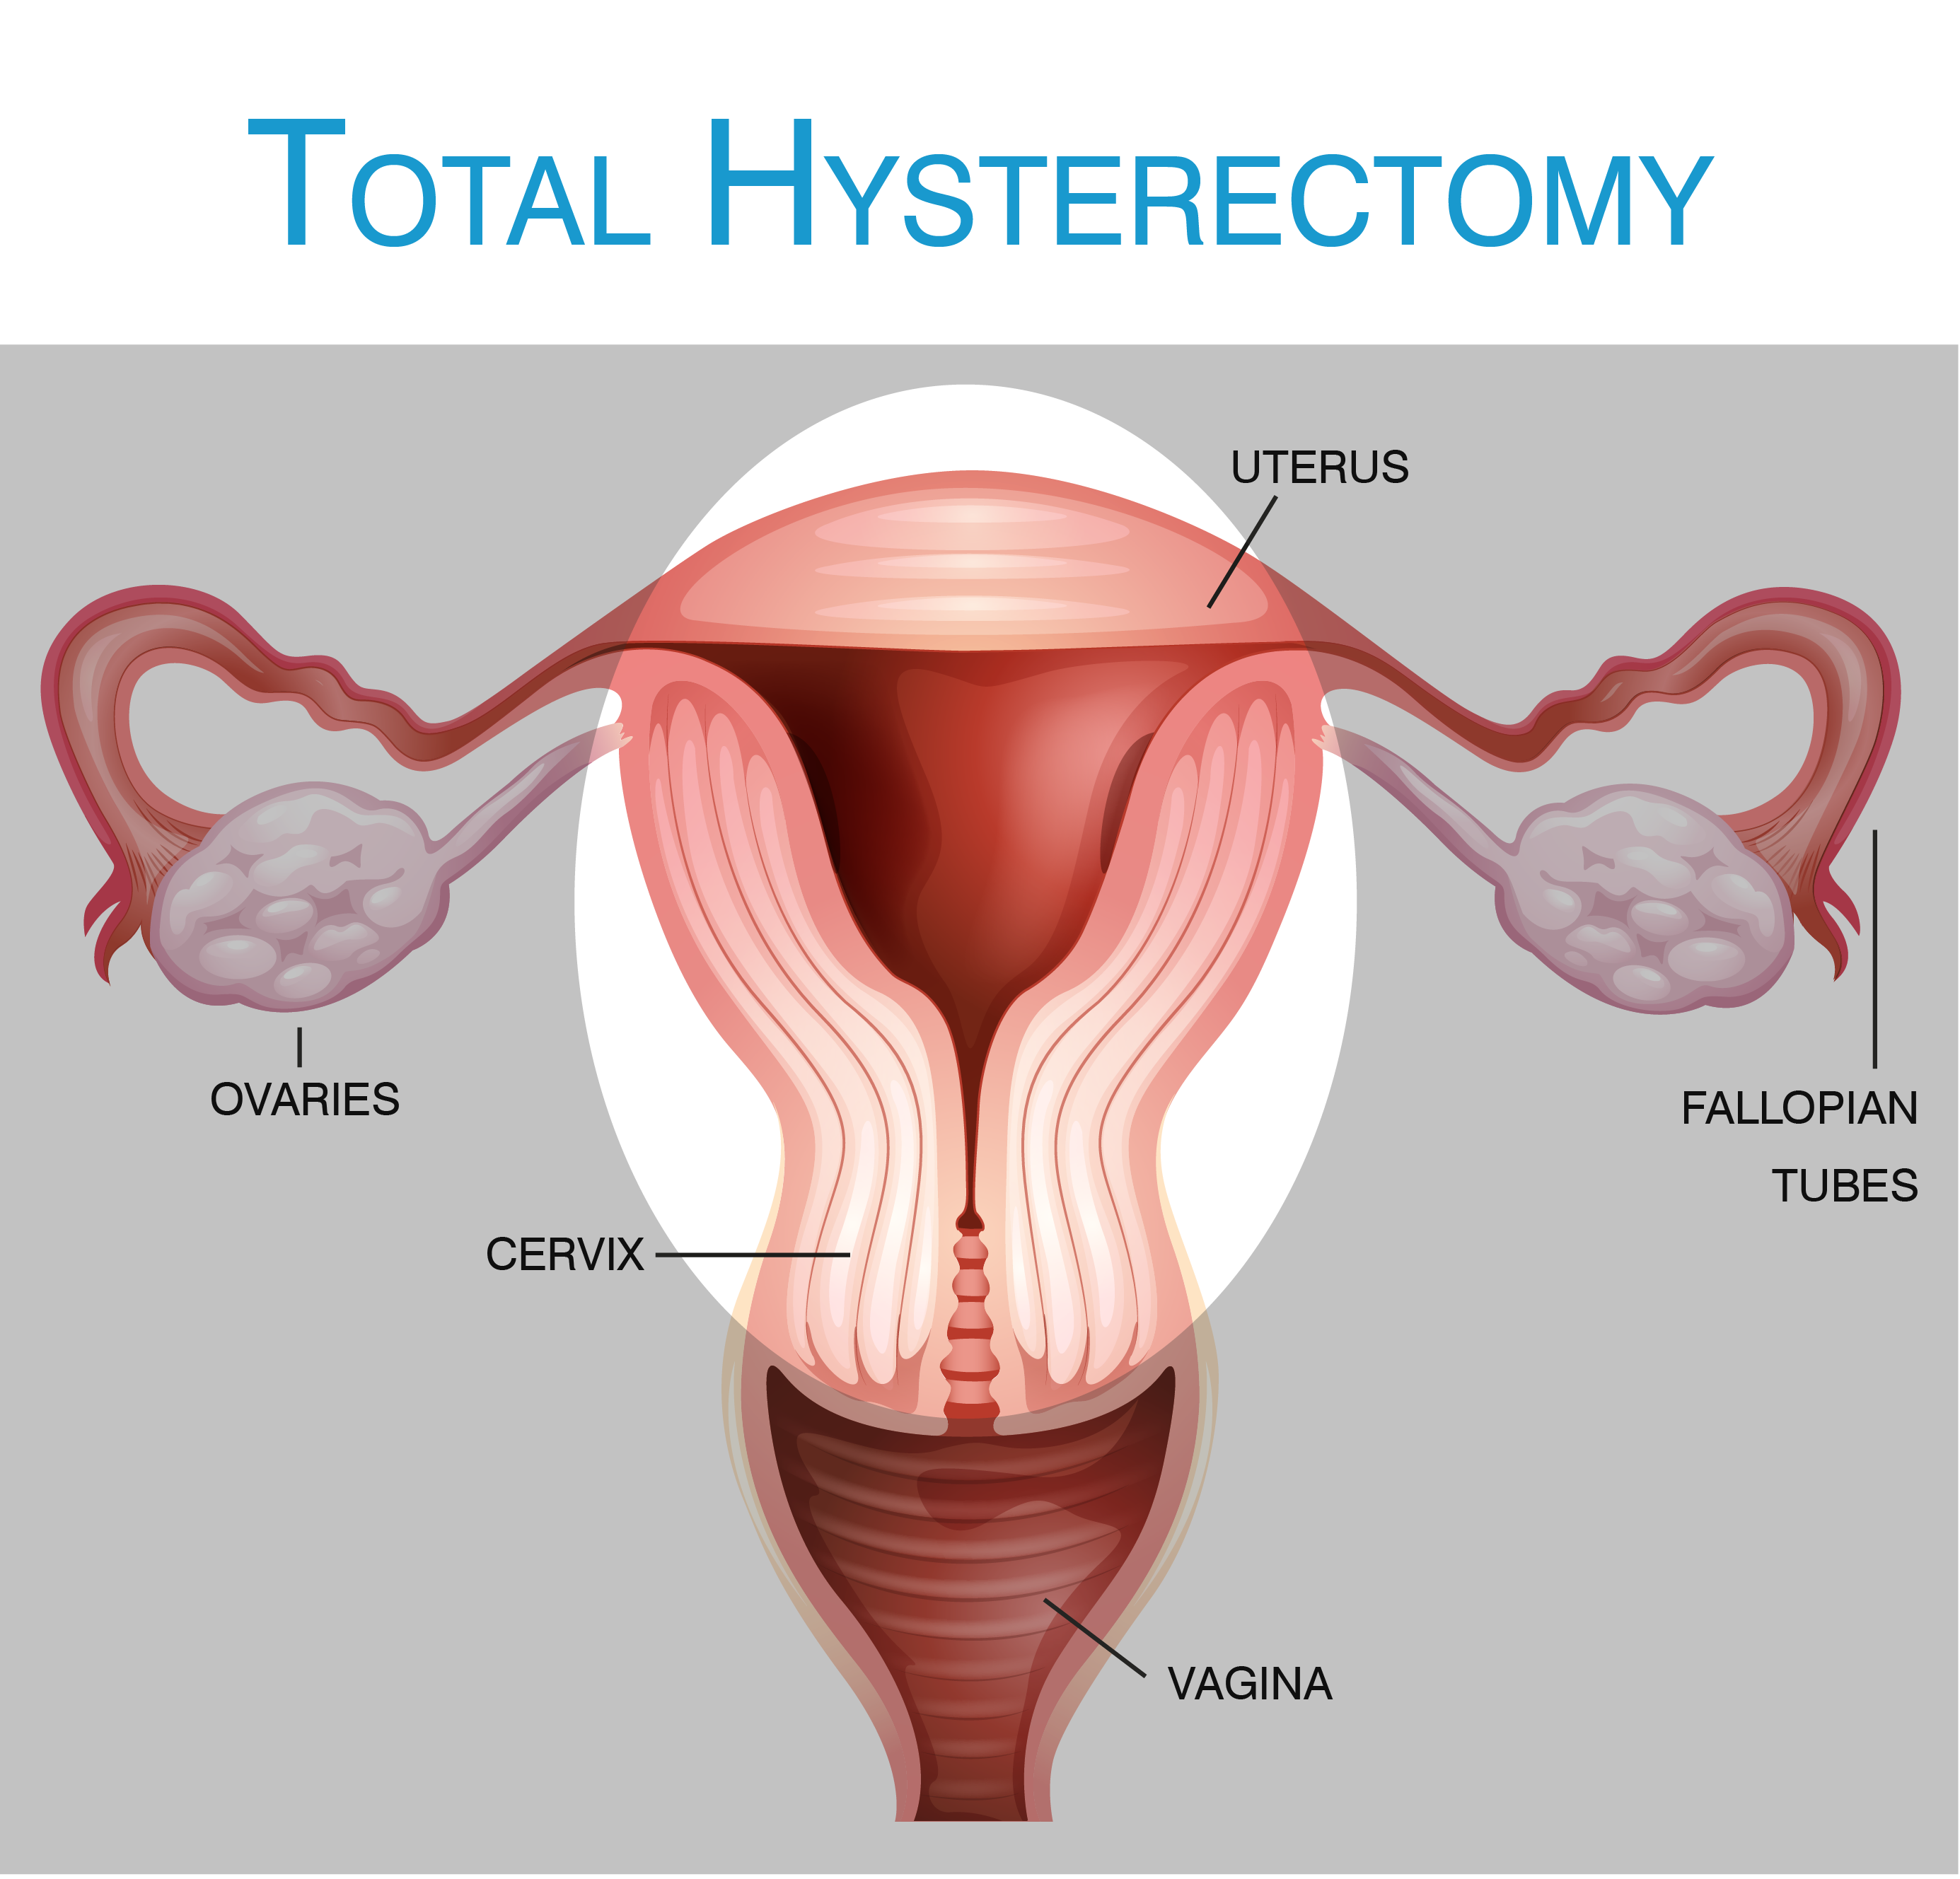 Hysterectomy What Is A Hysterectomy Hysterectomy Information